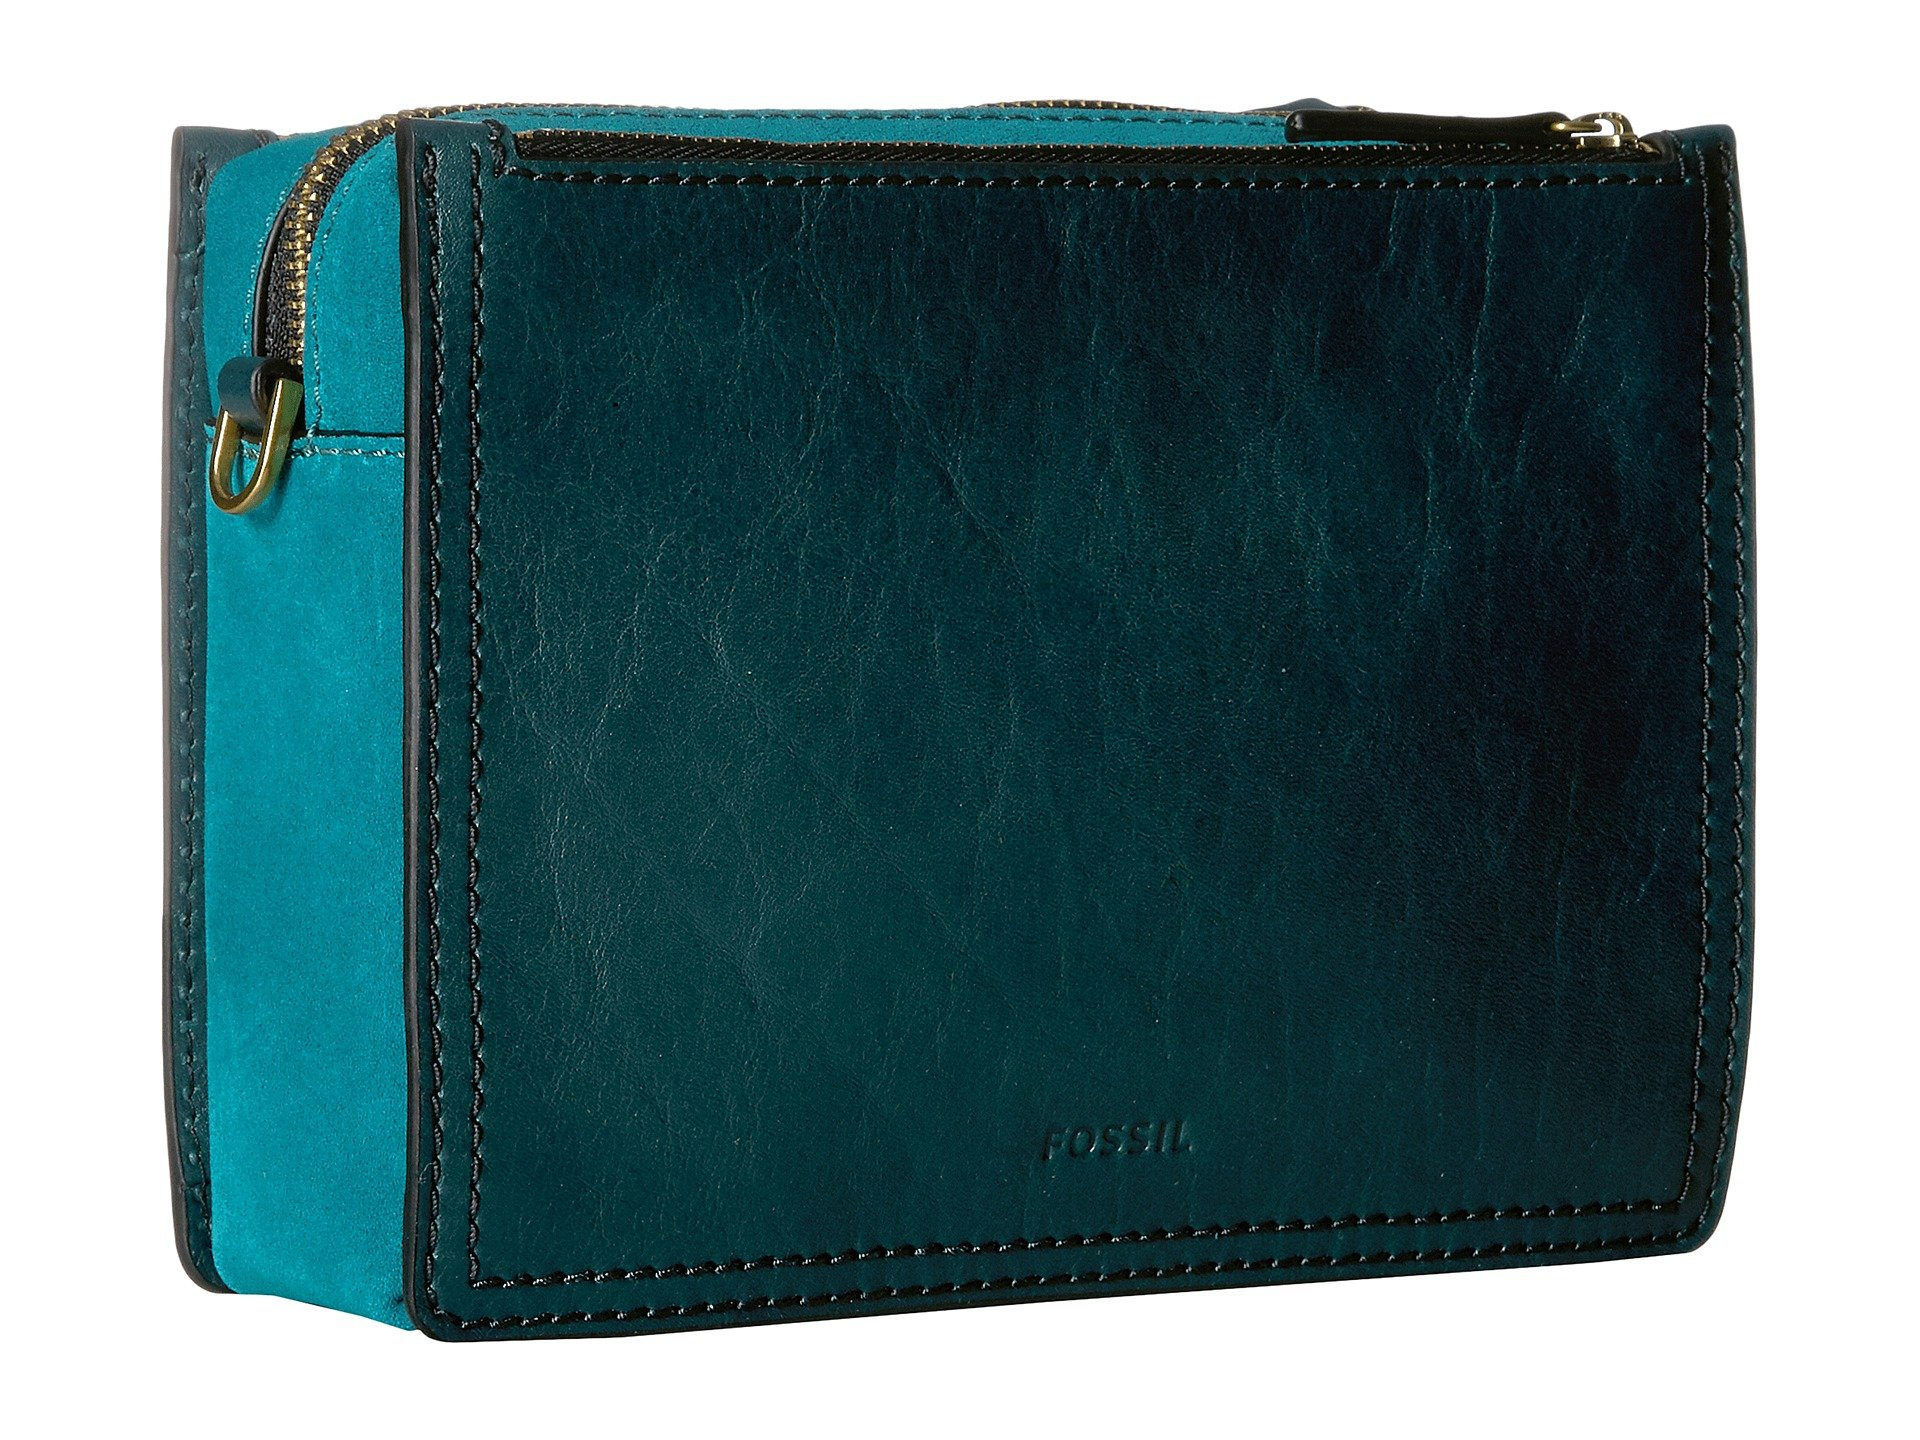 Indian Indian Indian Teal Fossil Crossbody Teal Campbell Crossbody Crossbody Campbell Fossil Fossil Campbell 4xnRq6wAH